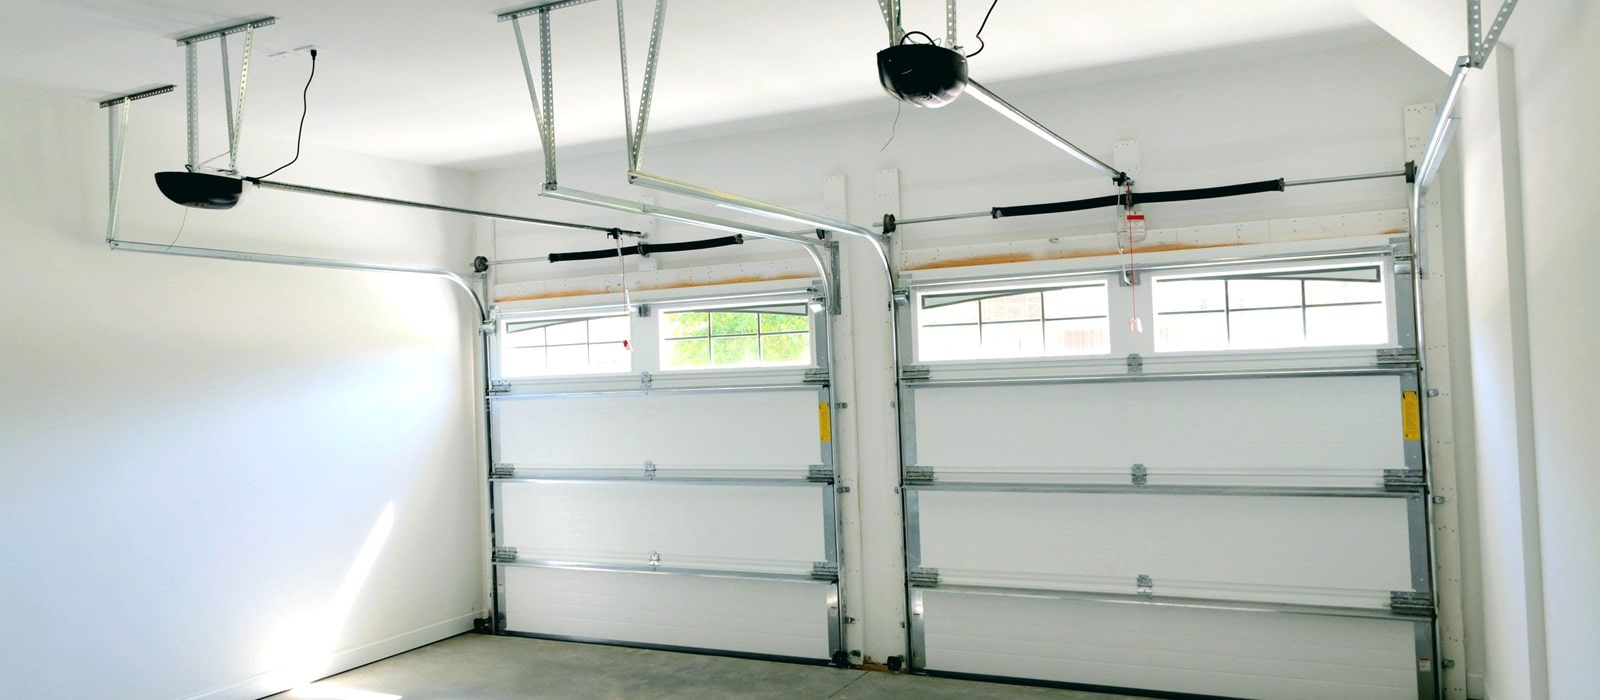 Garage Door Repair Riverside Choice Image French Door Garage 24 Hours Garage  Door Repair Service In